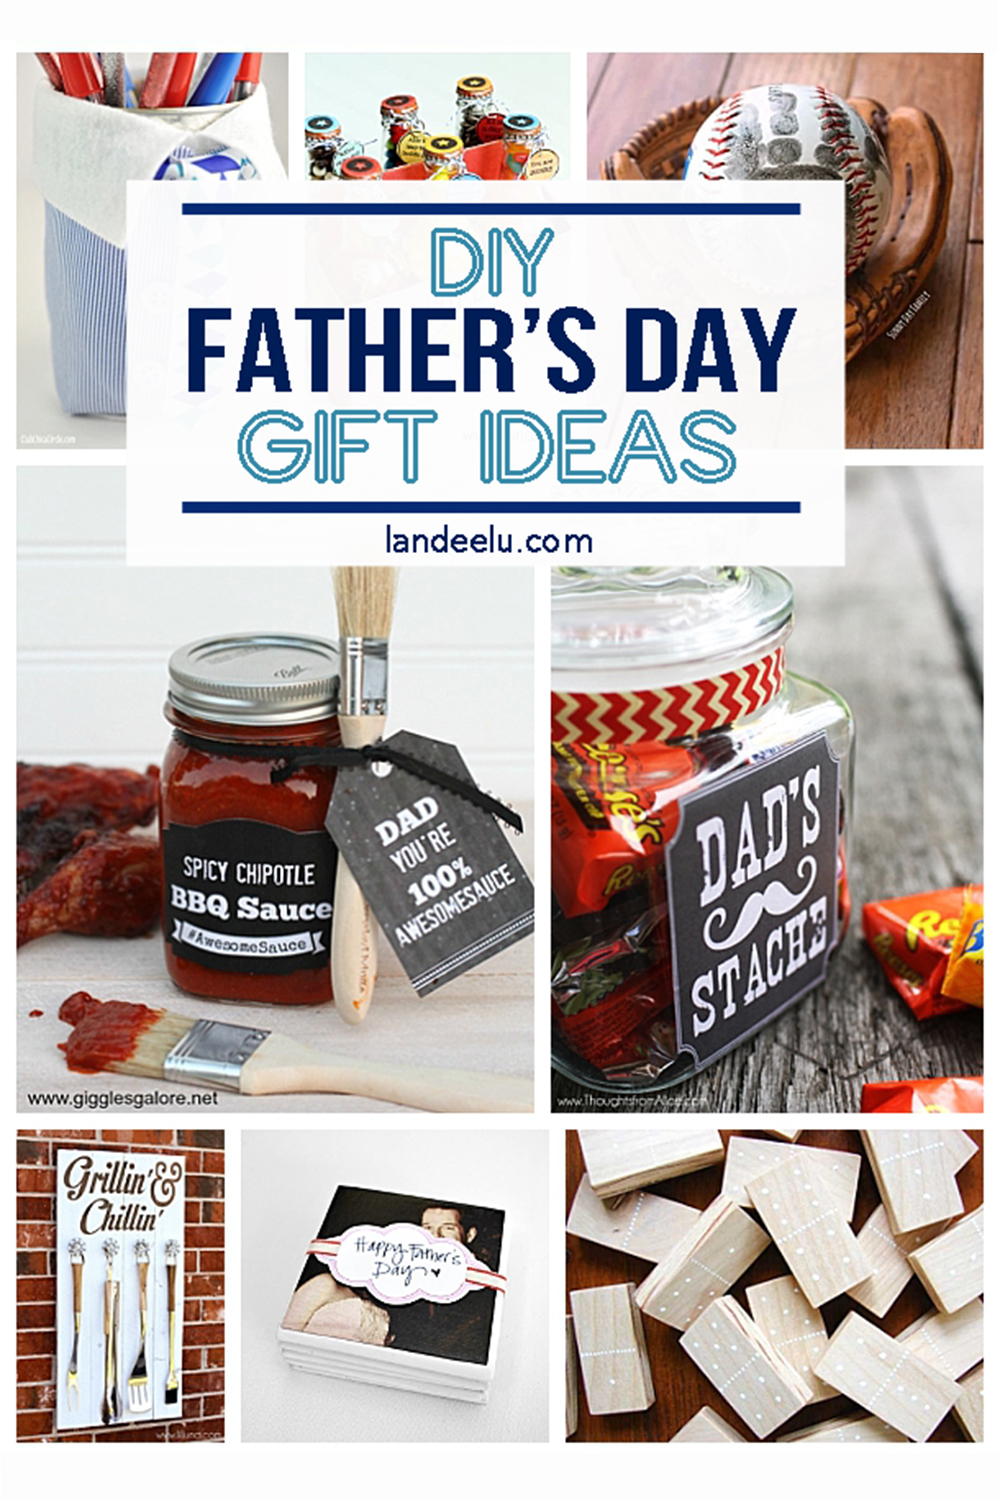 21 DIY Father's Day Gifts for Dad that he's going to love! #fathersday #fathersdaygiftideas #giftideas #giftsfordad #fathersdayideas